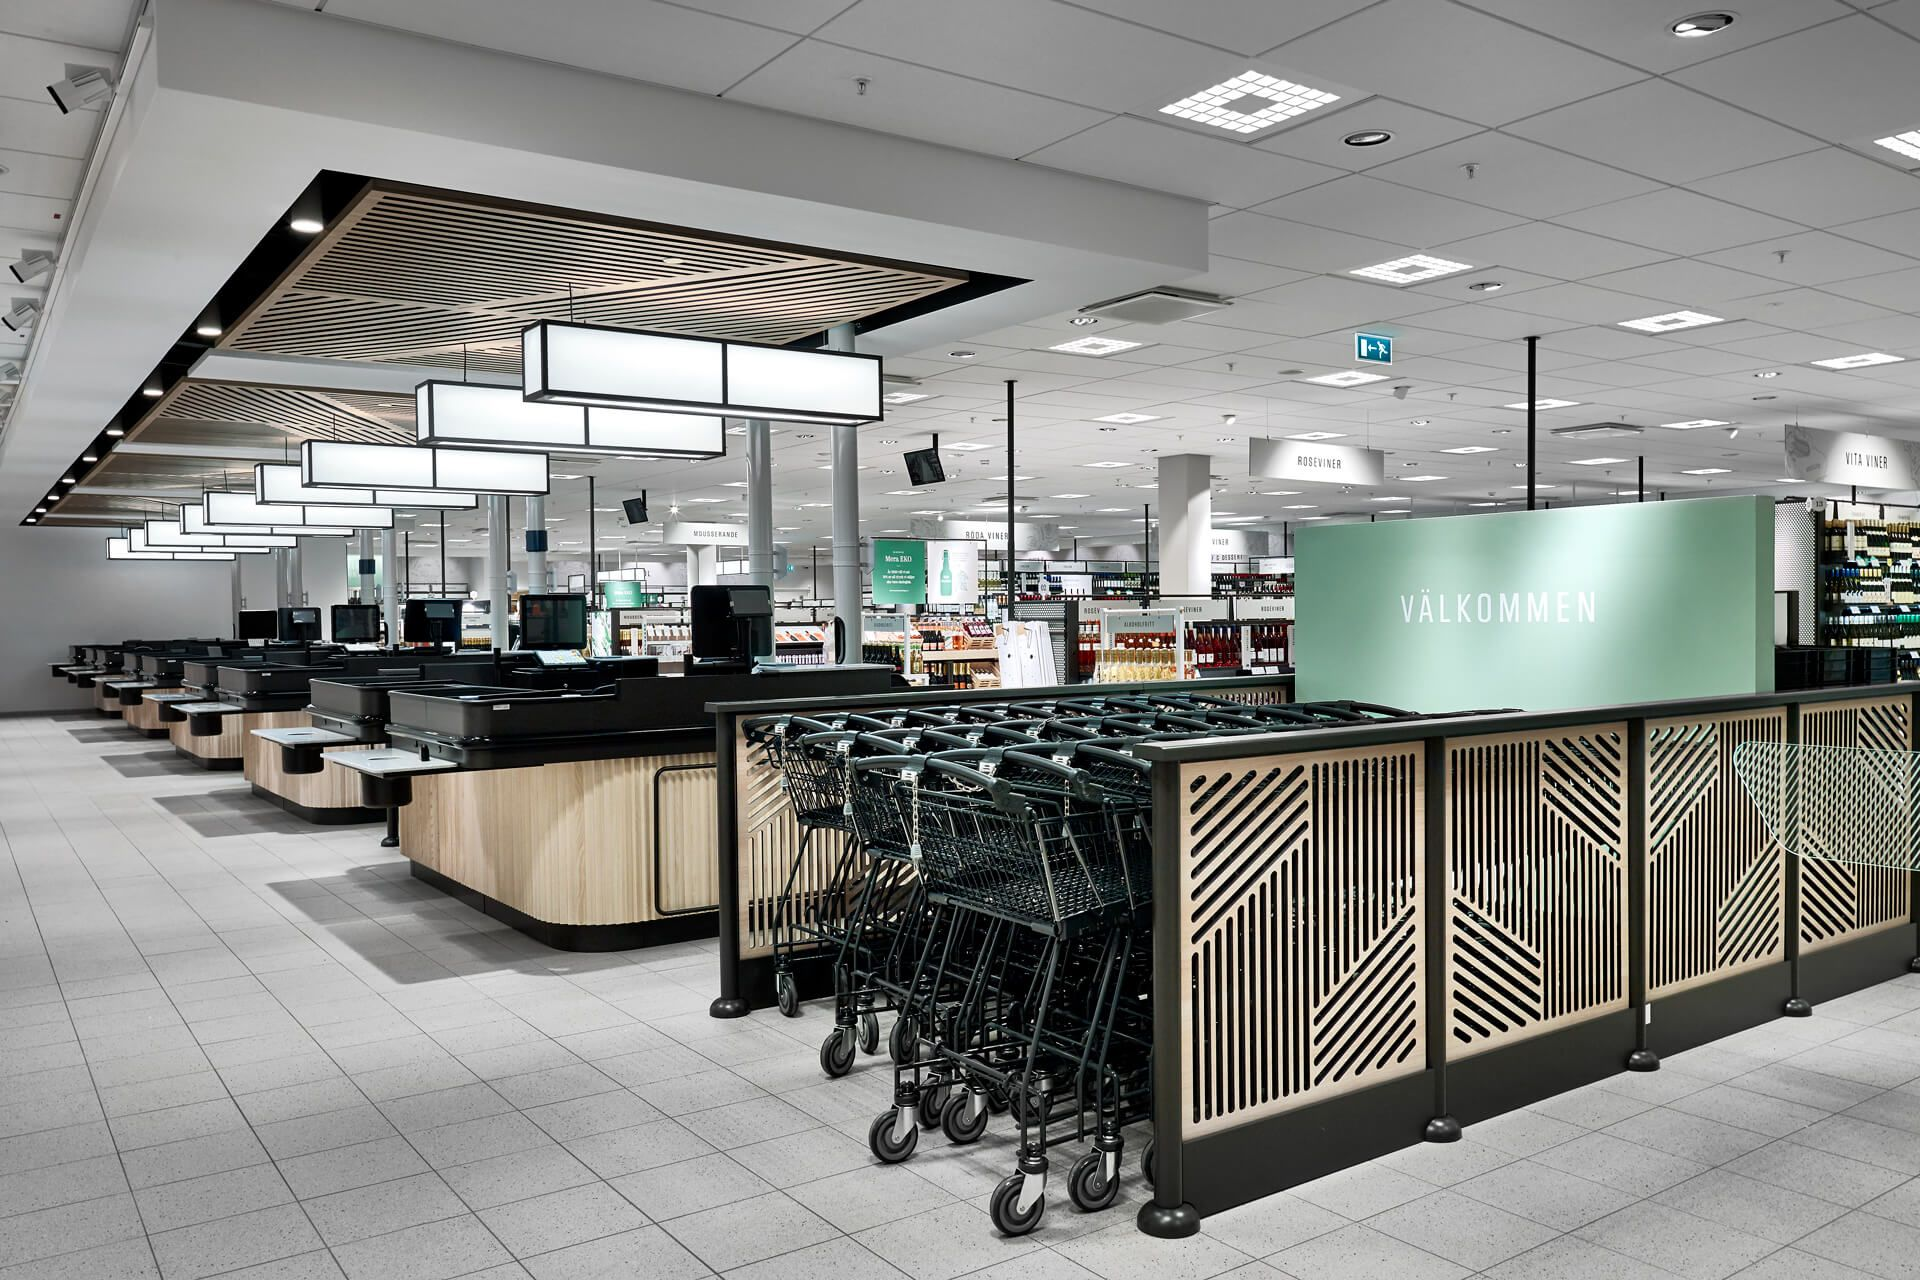 Design Interieur Granby Systembolaget Caseimage Kassa2 Granby Vm And Display